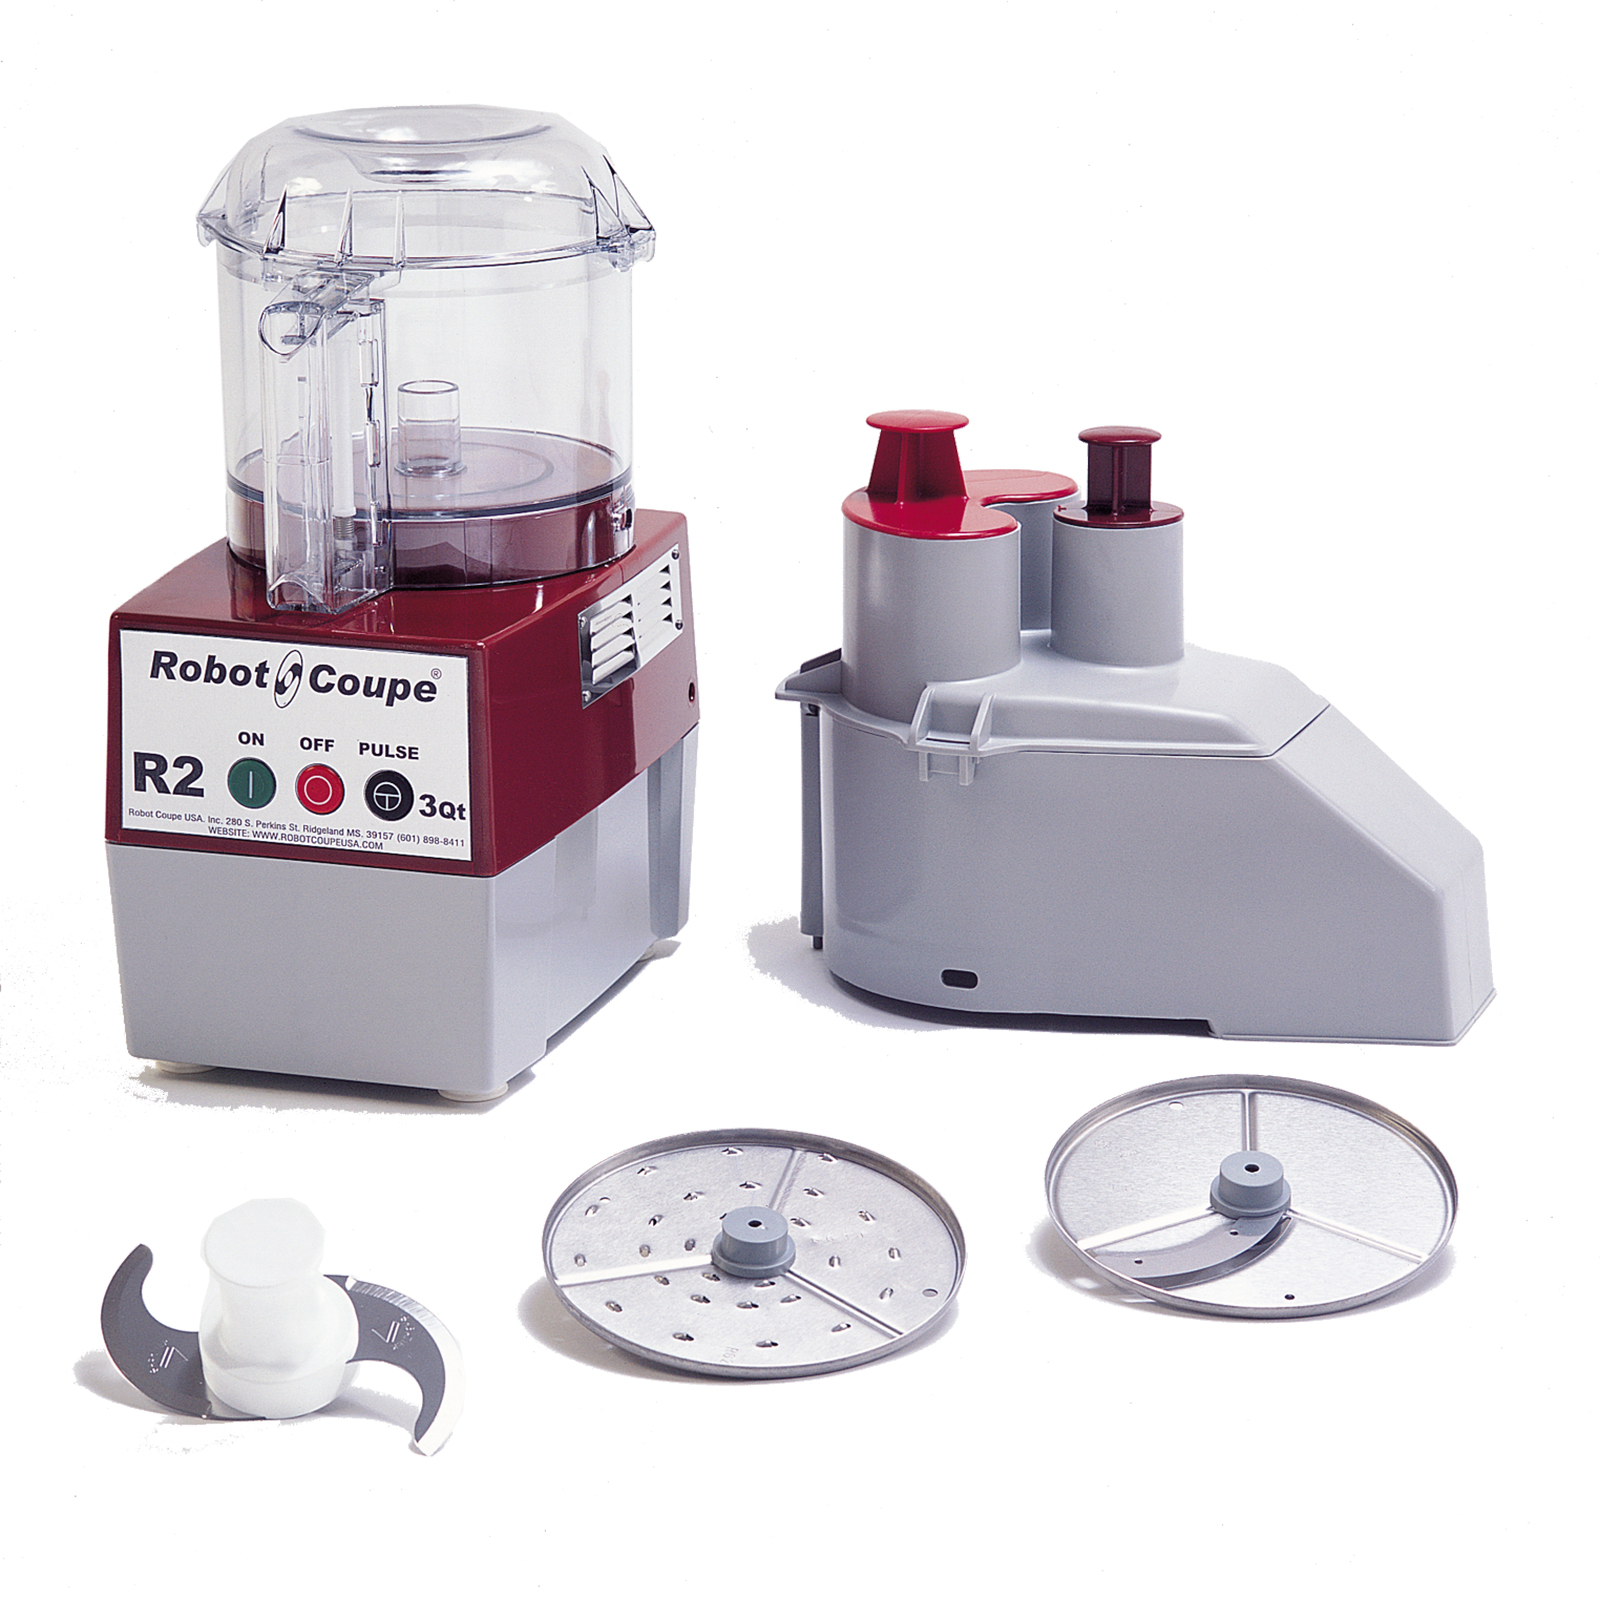 Robot Coupe R2N CLR food processor, benchtop / countertop